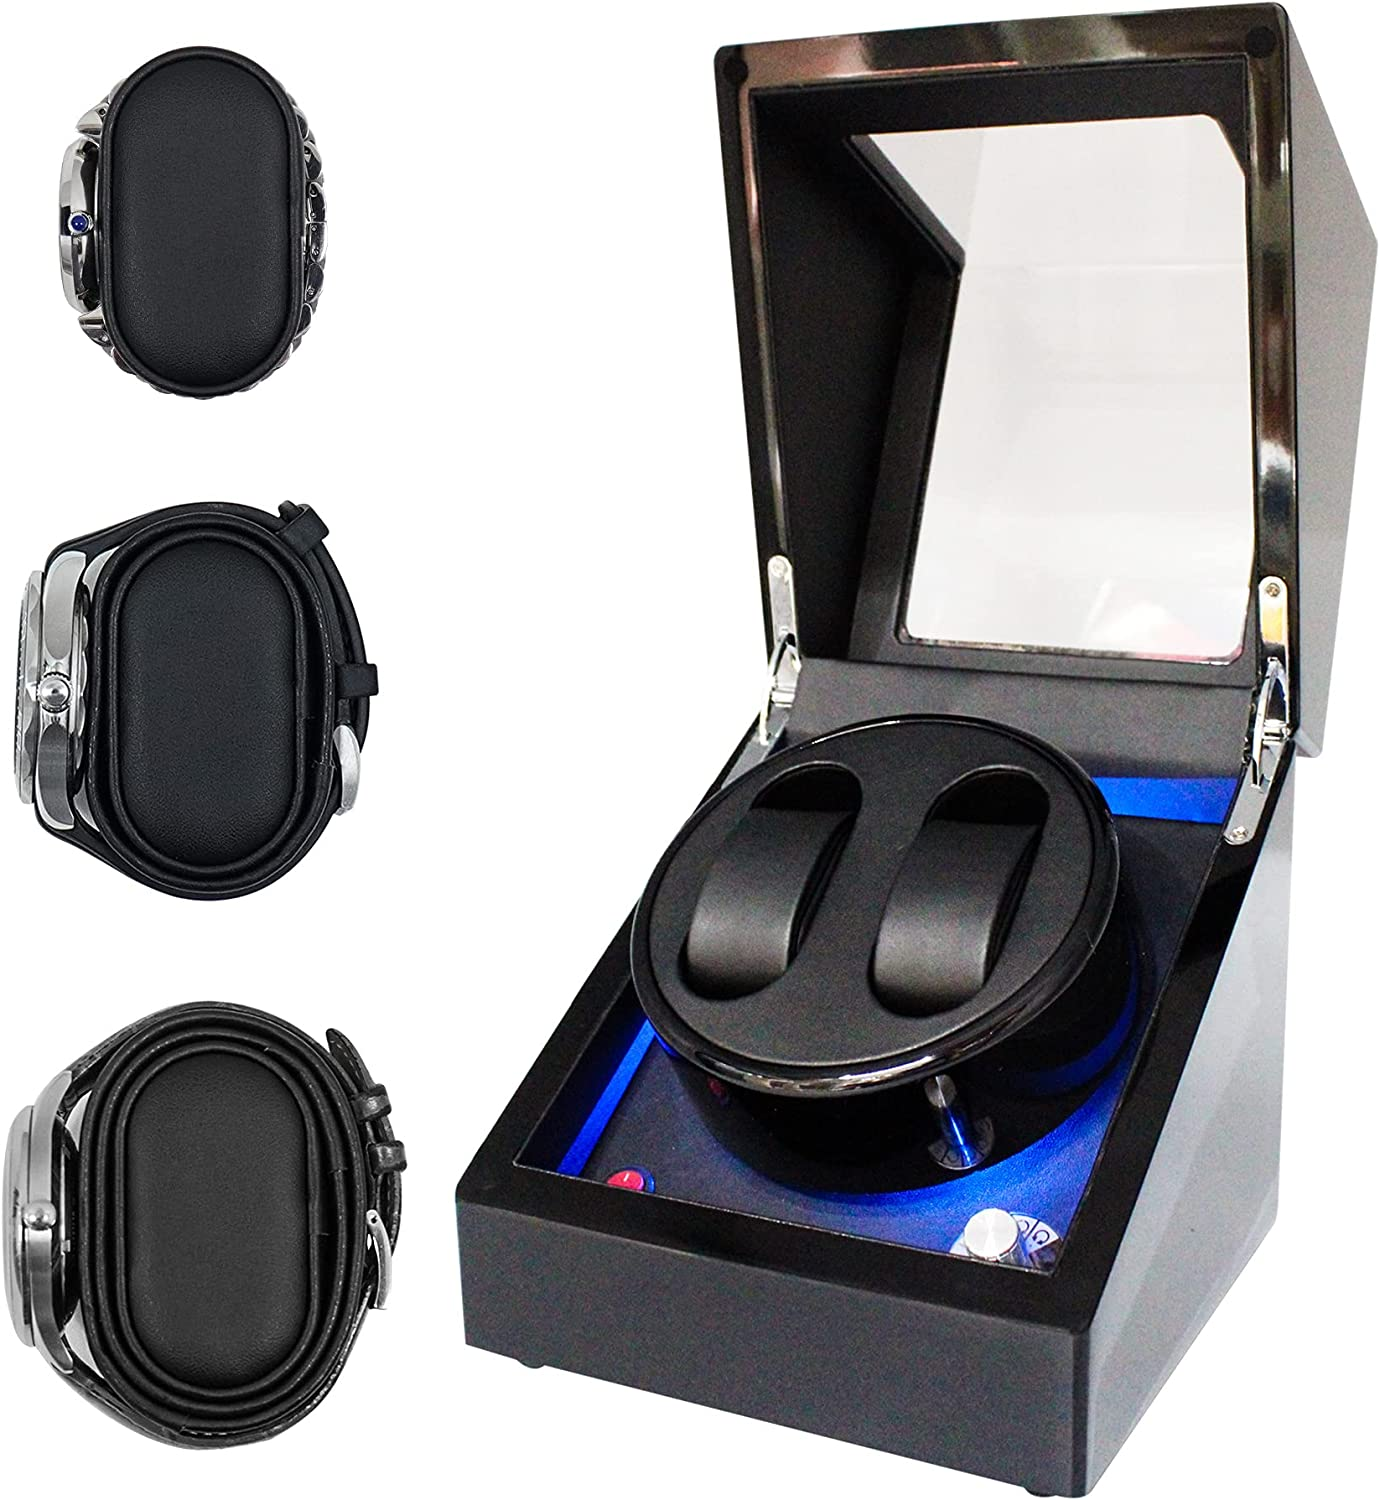 ORYX Double Watch Winders for Automatic Watches Box, Watch Rotator for 3 Sizes Watches with LED Light, Rotating Watch Case, Watch Shaker, Ac or Battery Powered Super Quiet Mabuchi Motor(Black+Black): Watches